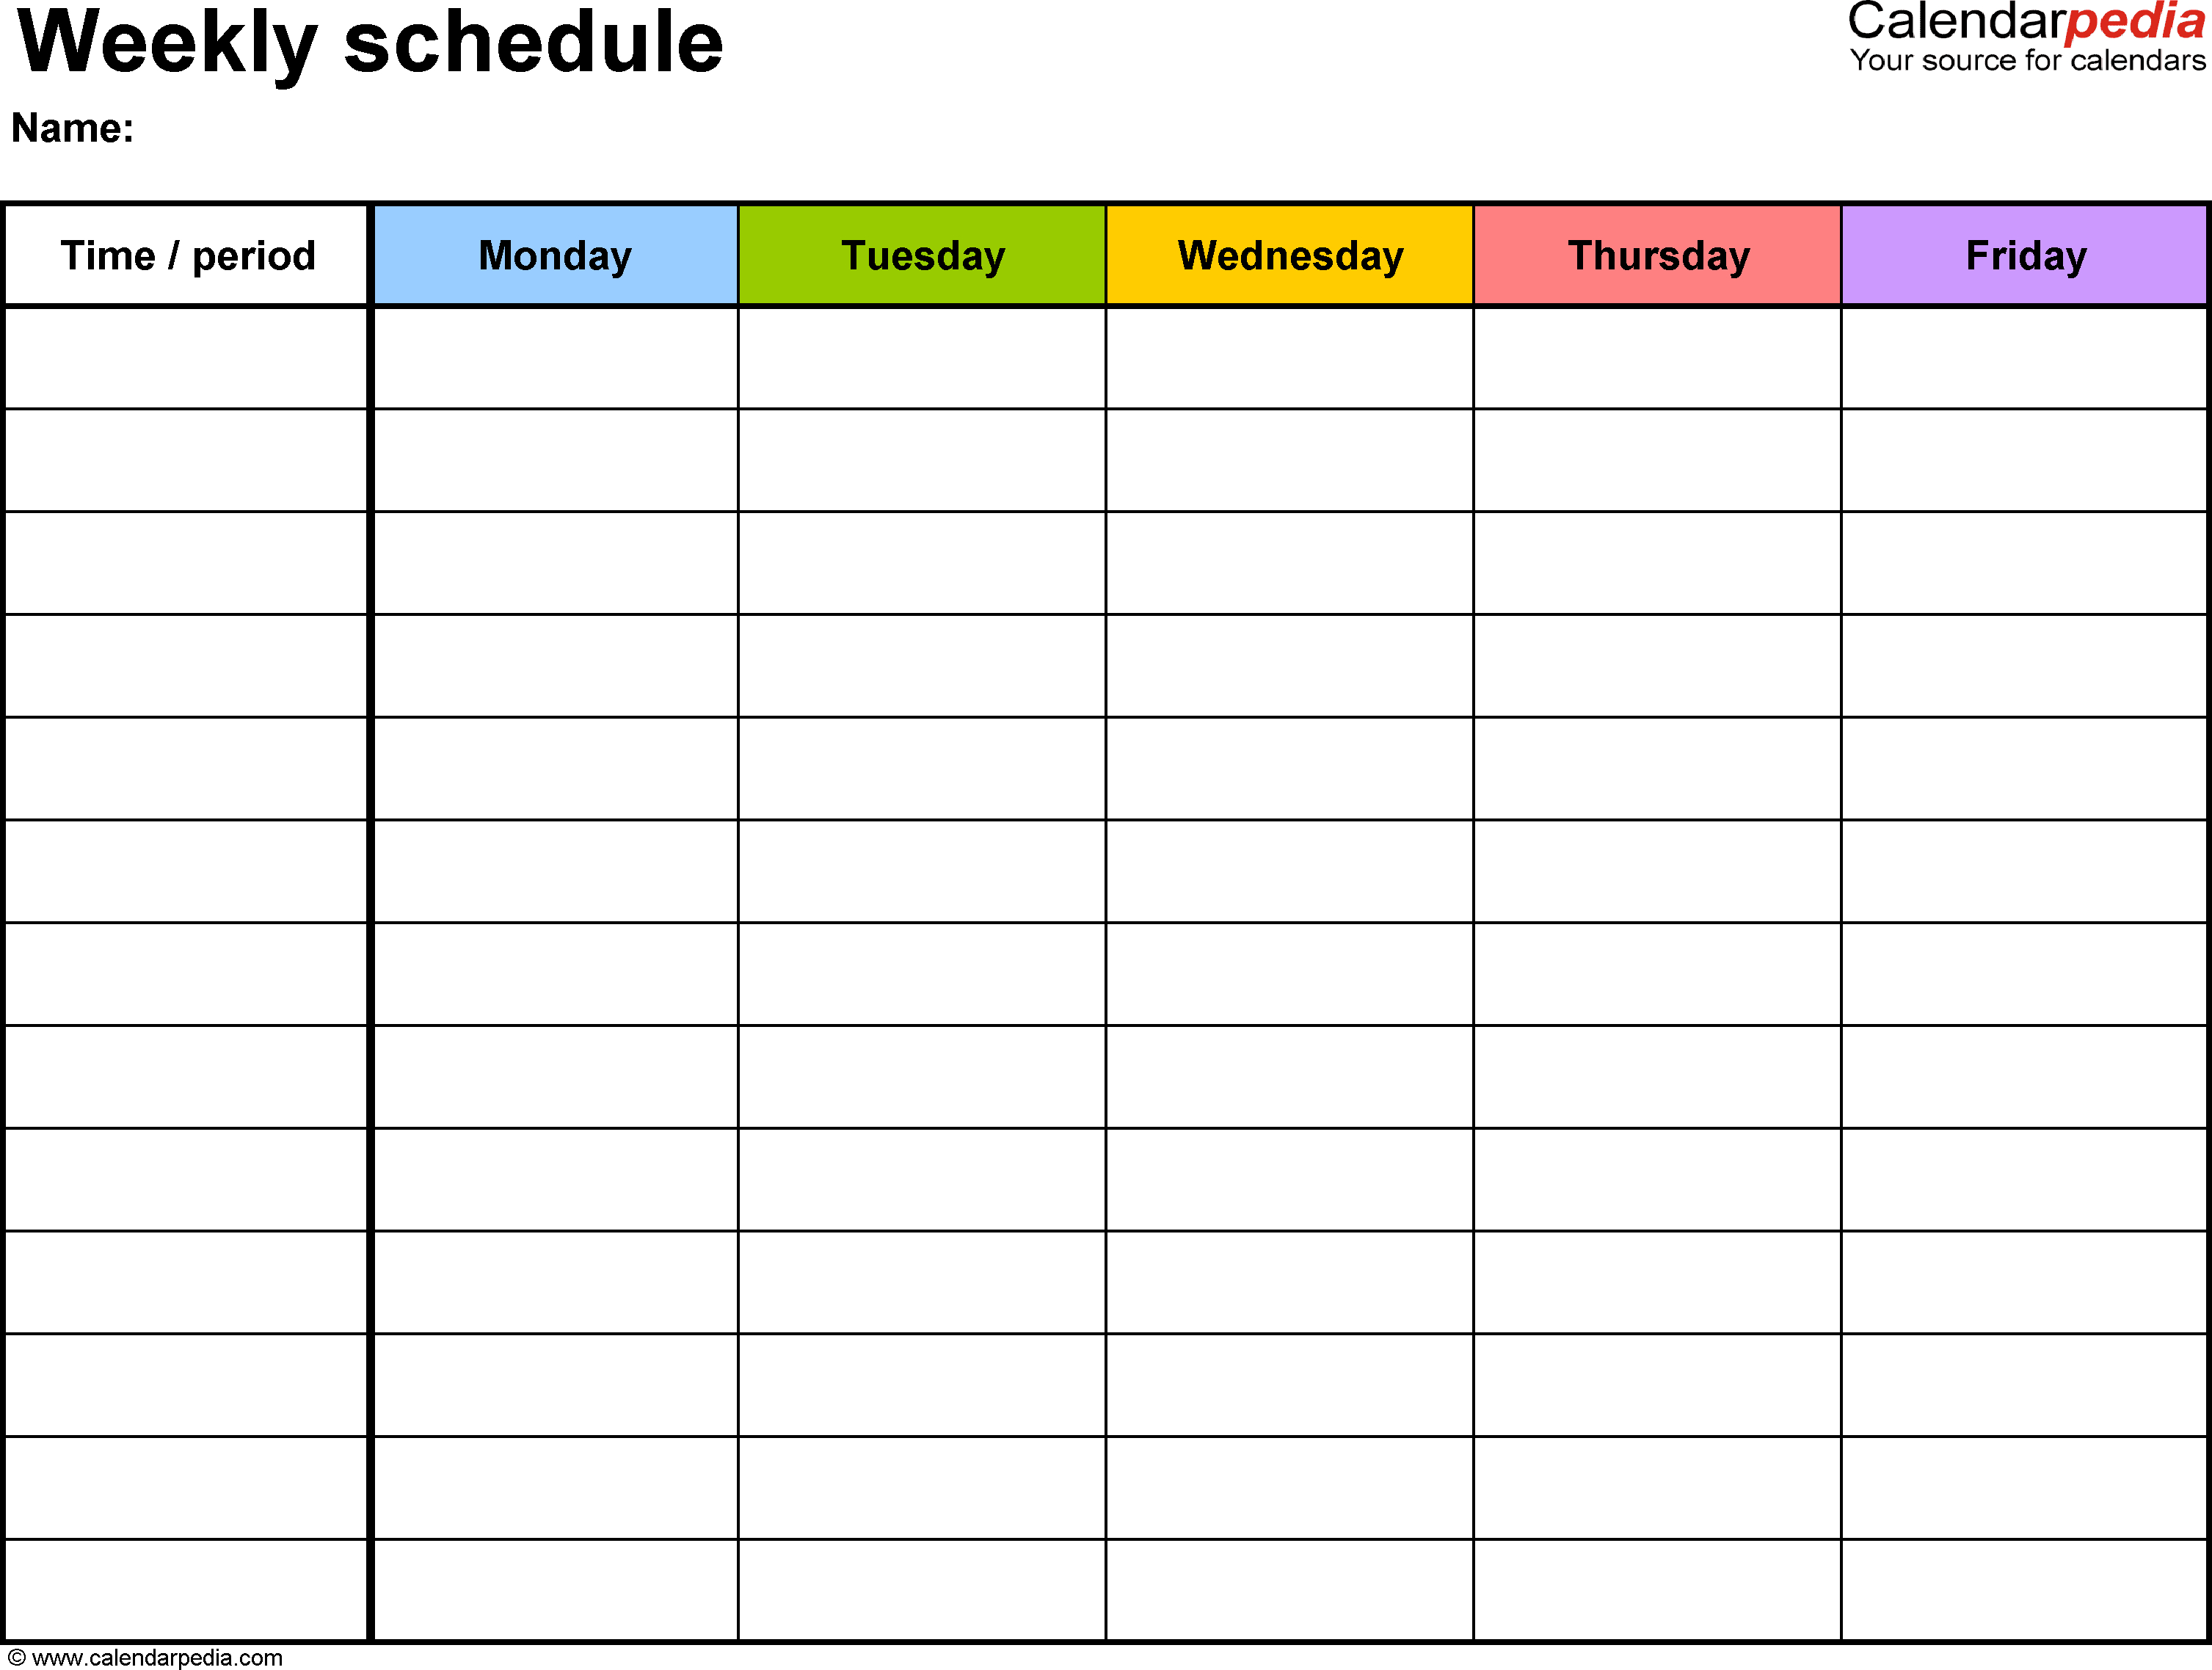 Free Weekly Schedule Templates For Word - 18 Templates pertaining to 7 Day 12 Week Planner Blank